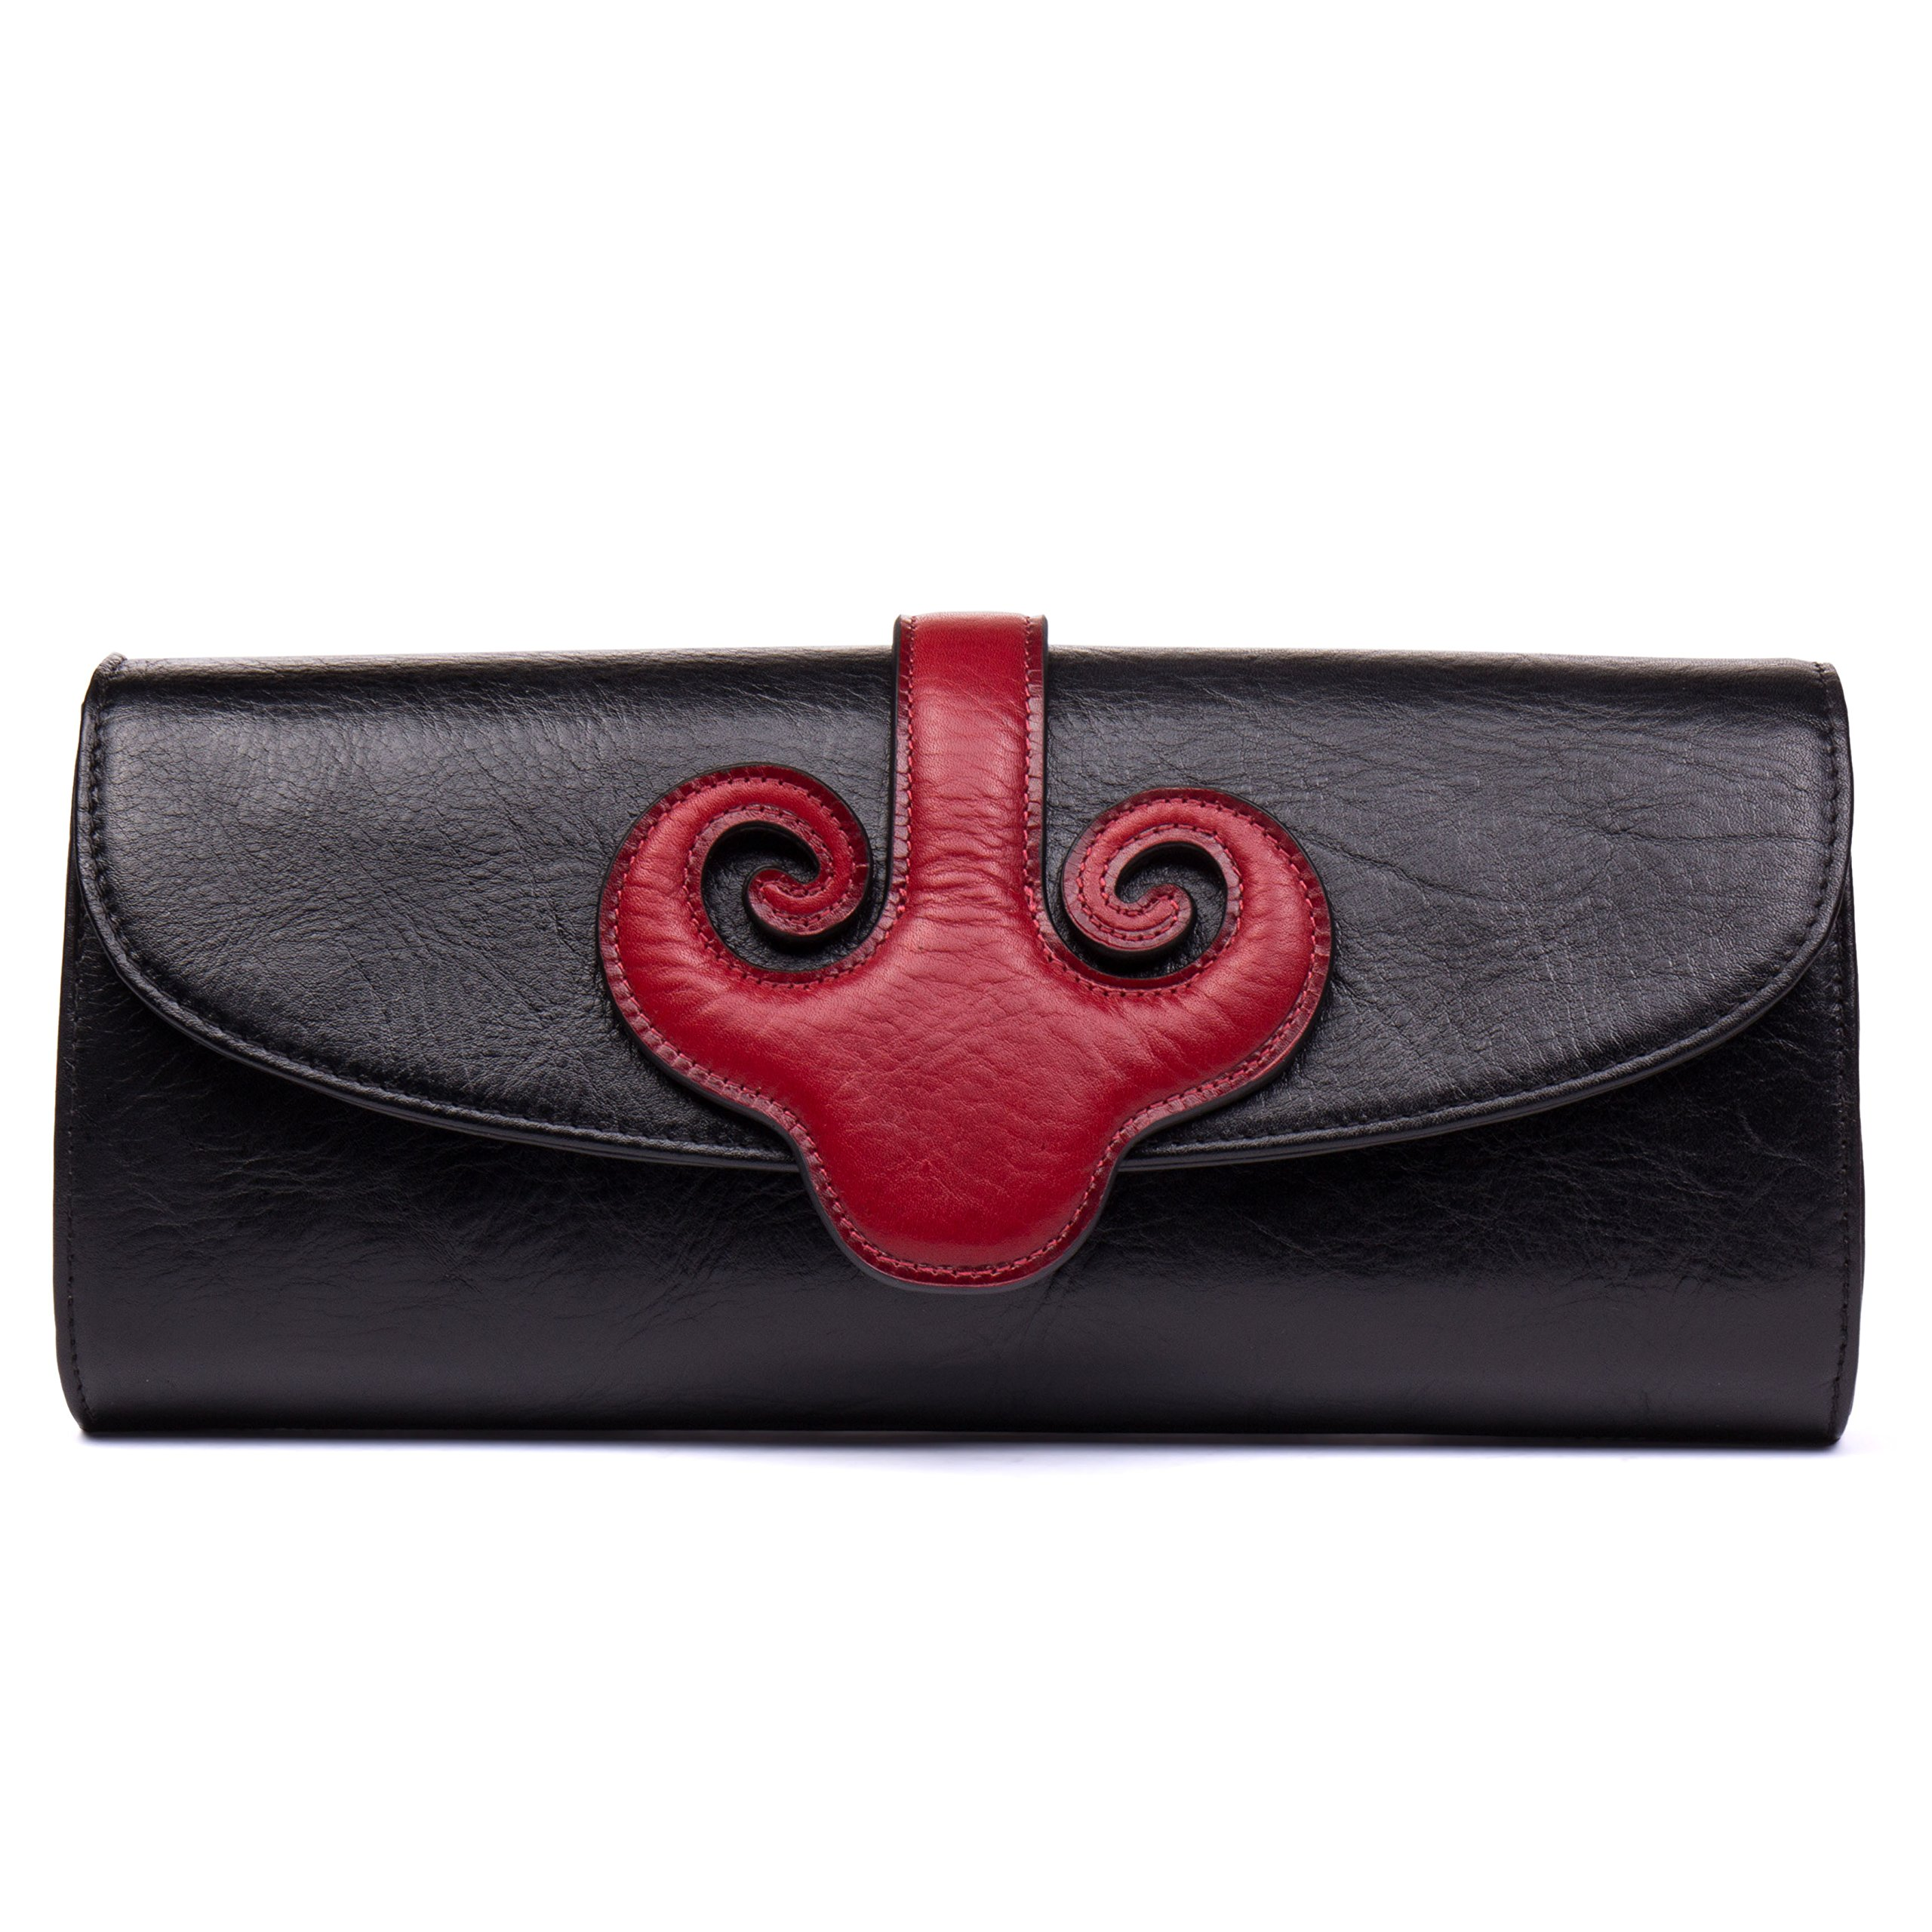 Malirona Vintage Evening Clutch Purses Envelope Clutch Bag Shouler Bag Women's Handbag (Black) by Malirona